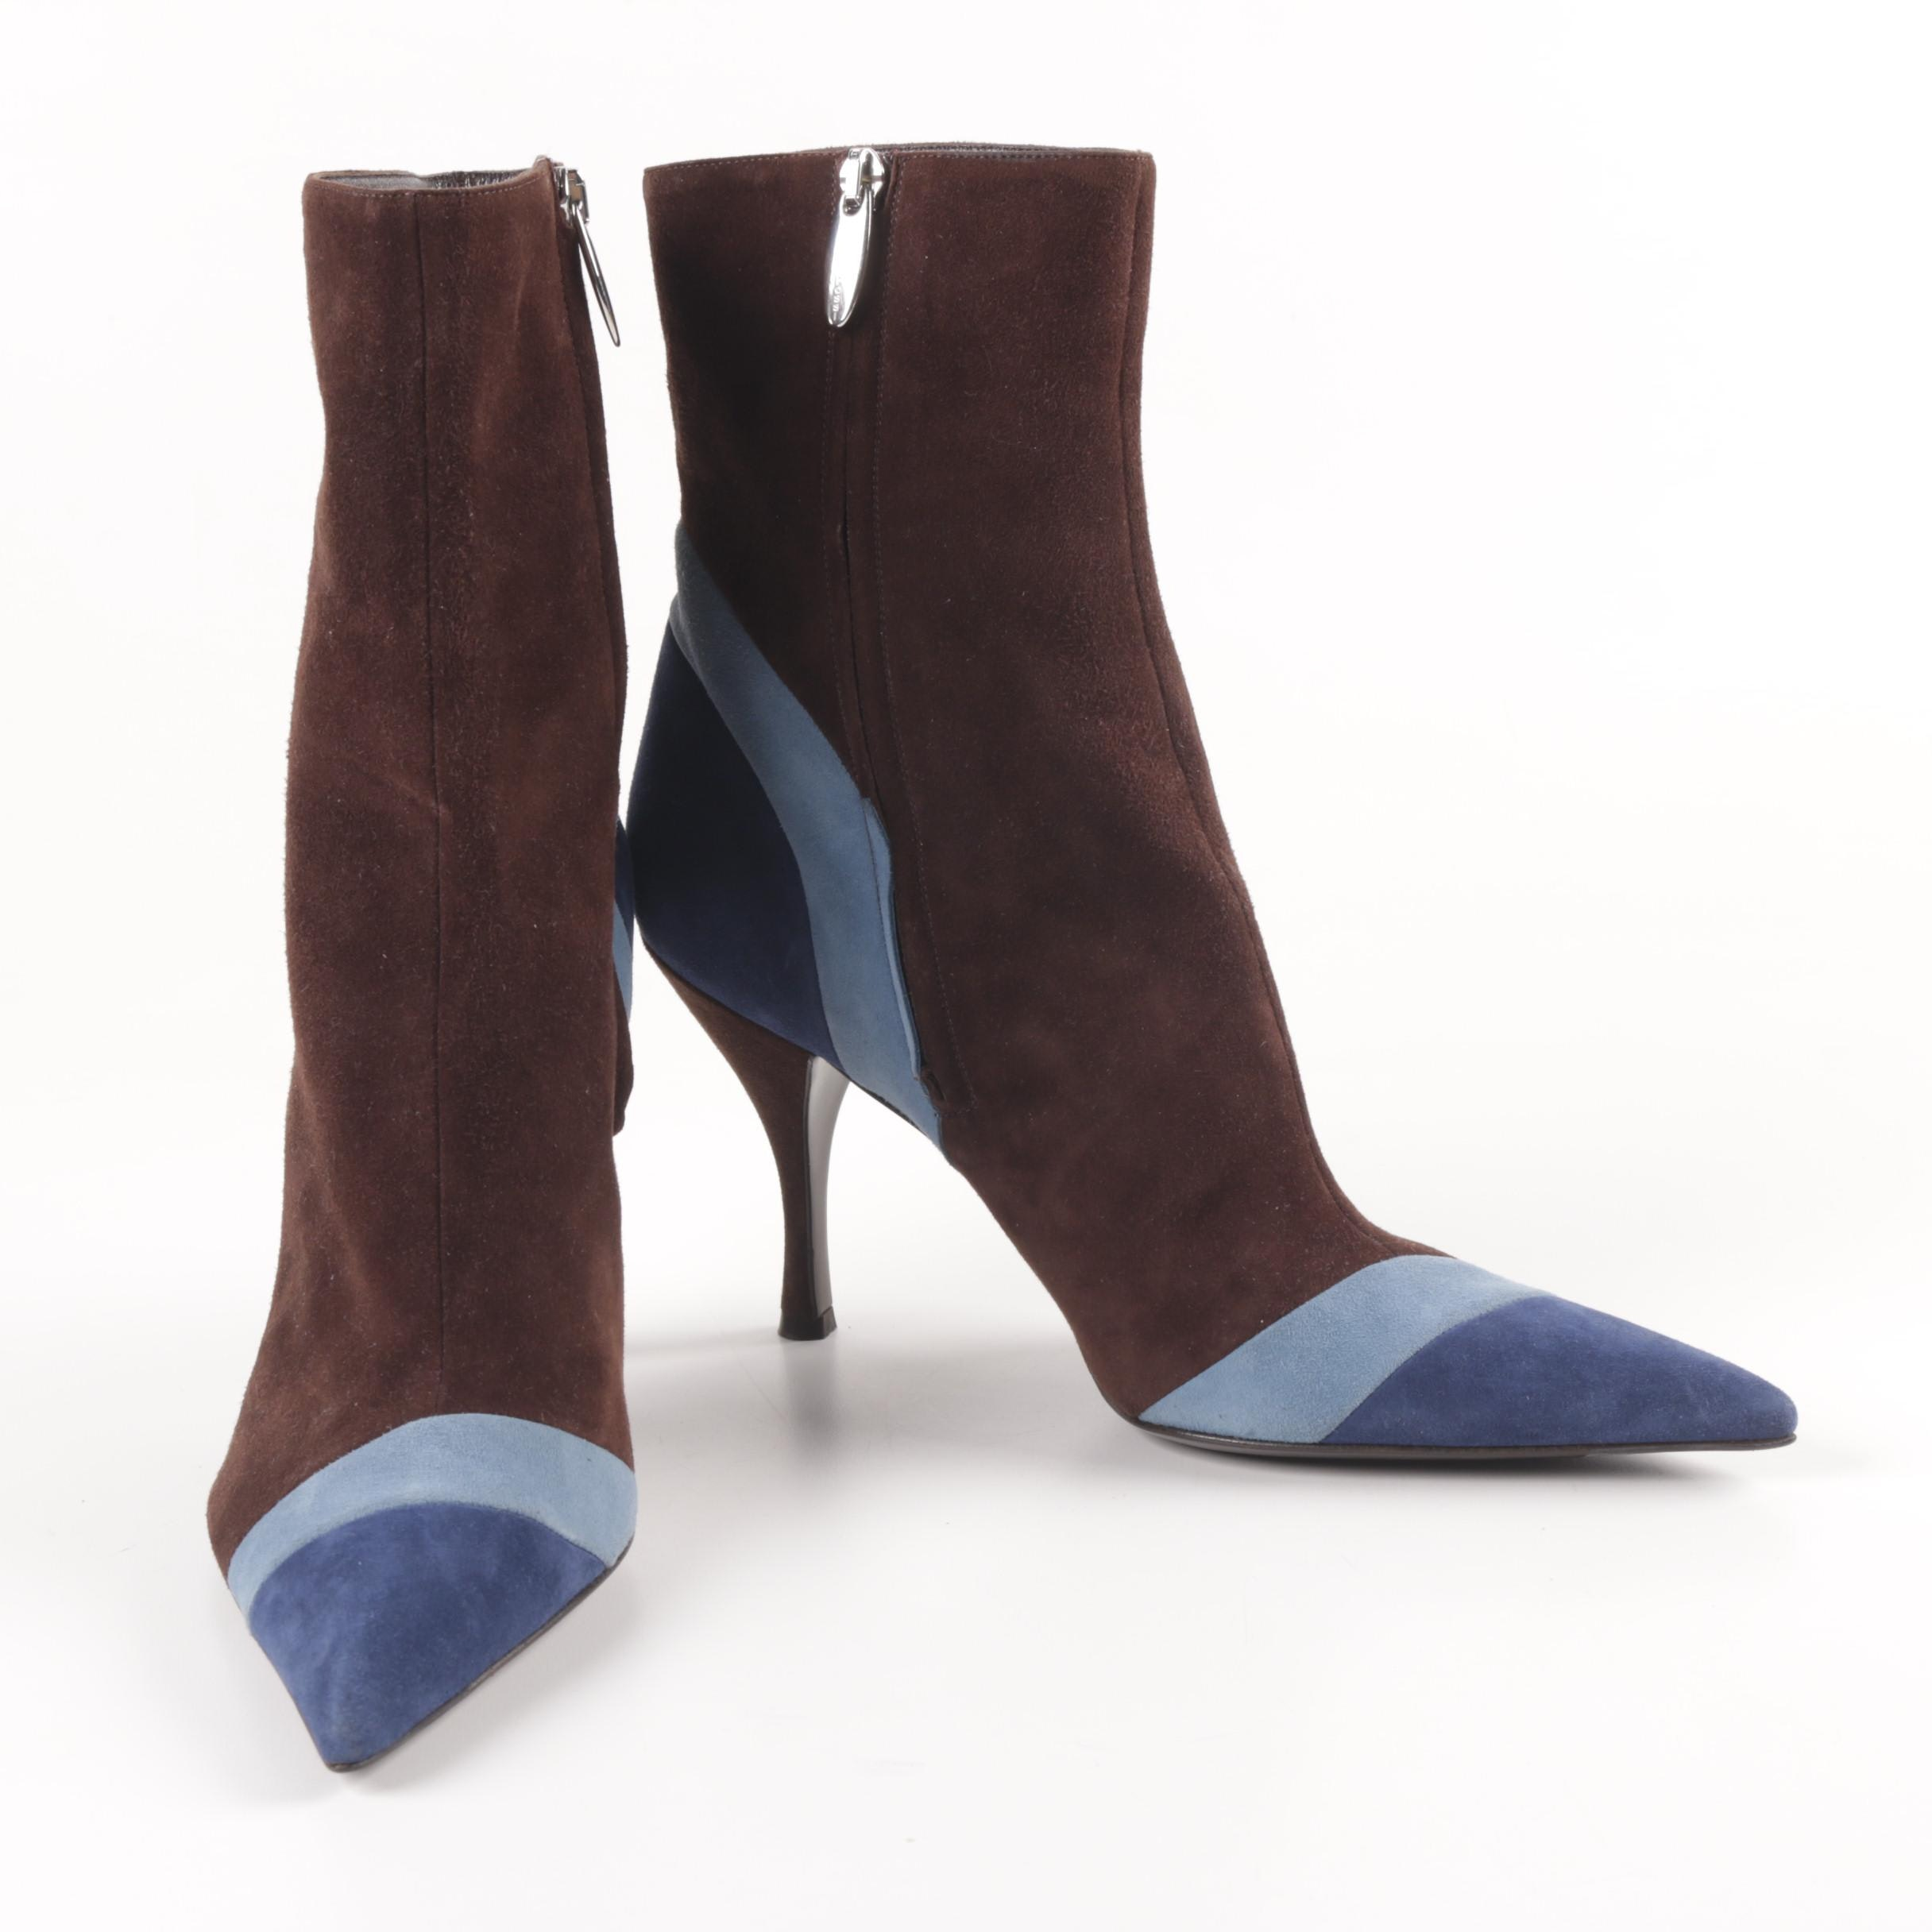 Sergio Rossi Suede Pointed Toe Ankle Boots